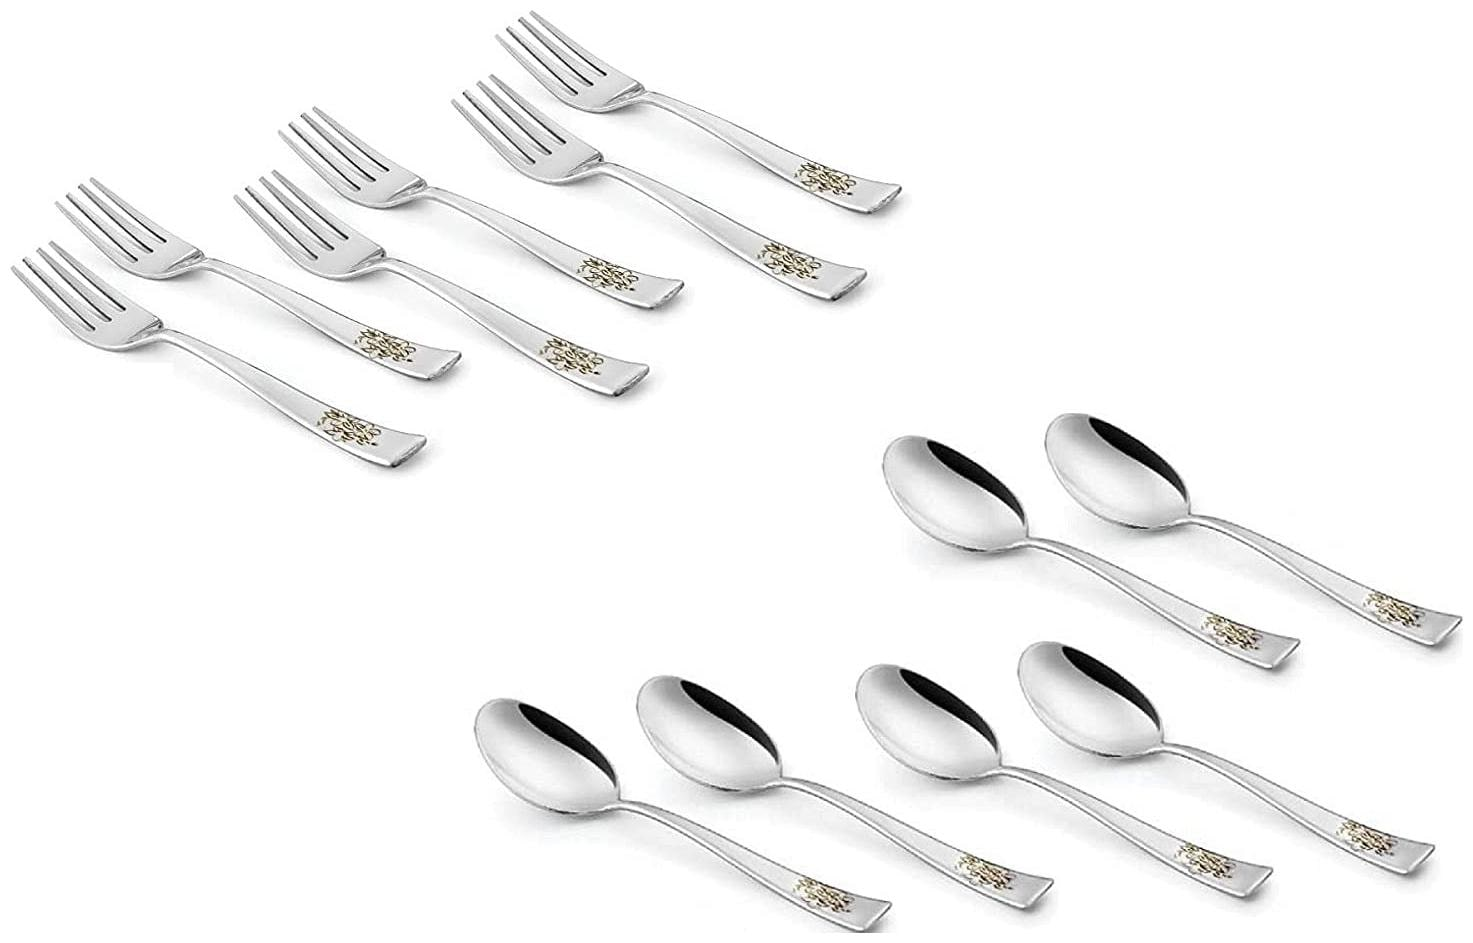 SAGER Platinum Collection 12 Piece Stainless Steel Cutlery Set  Table Spoon and Dinner Fork Set   6 Table Spoons, 6 Dinner Forks with Permanent Floral